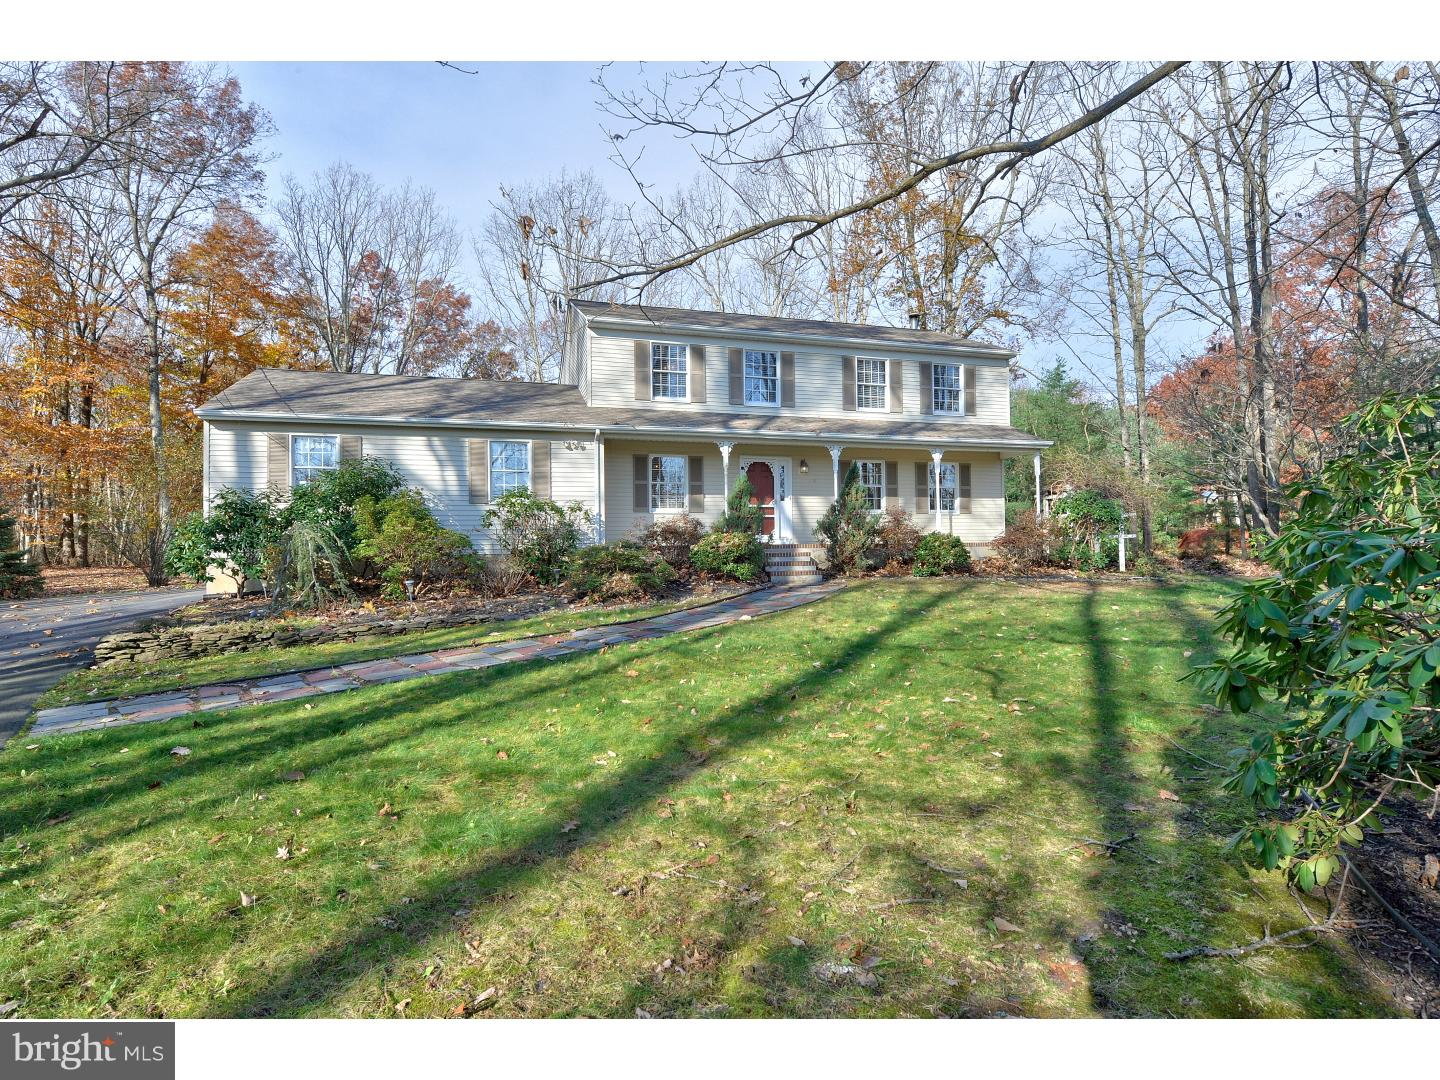 Single Family Home for Sale at 125 HOPKINS Road New Egypt, New Jersey 08533 United States